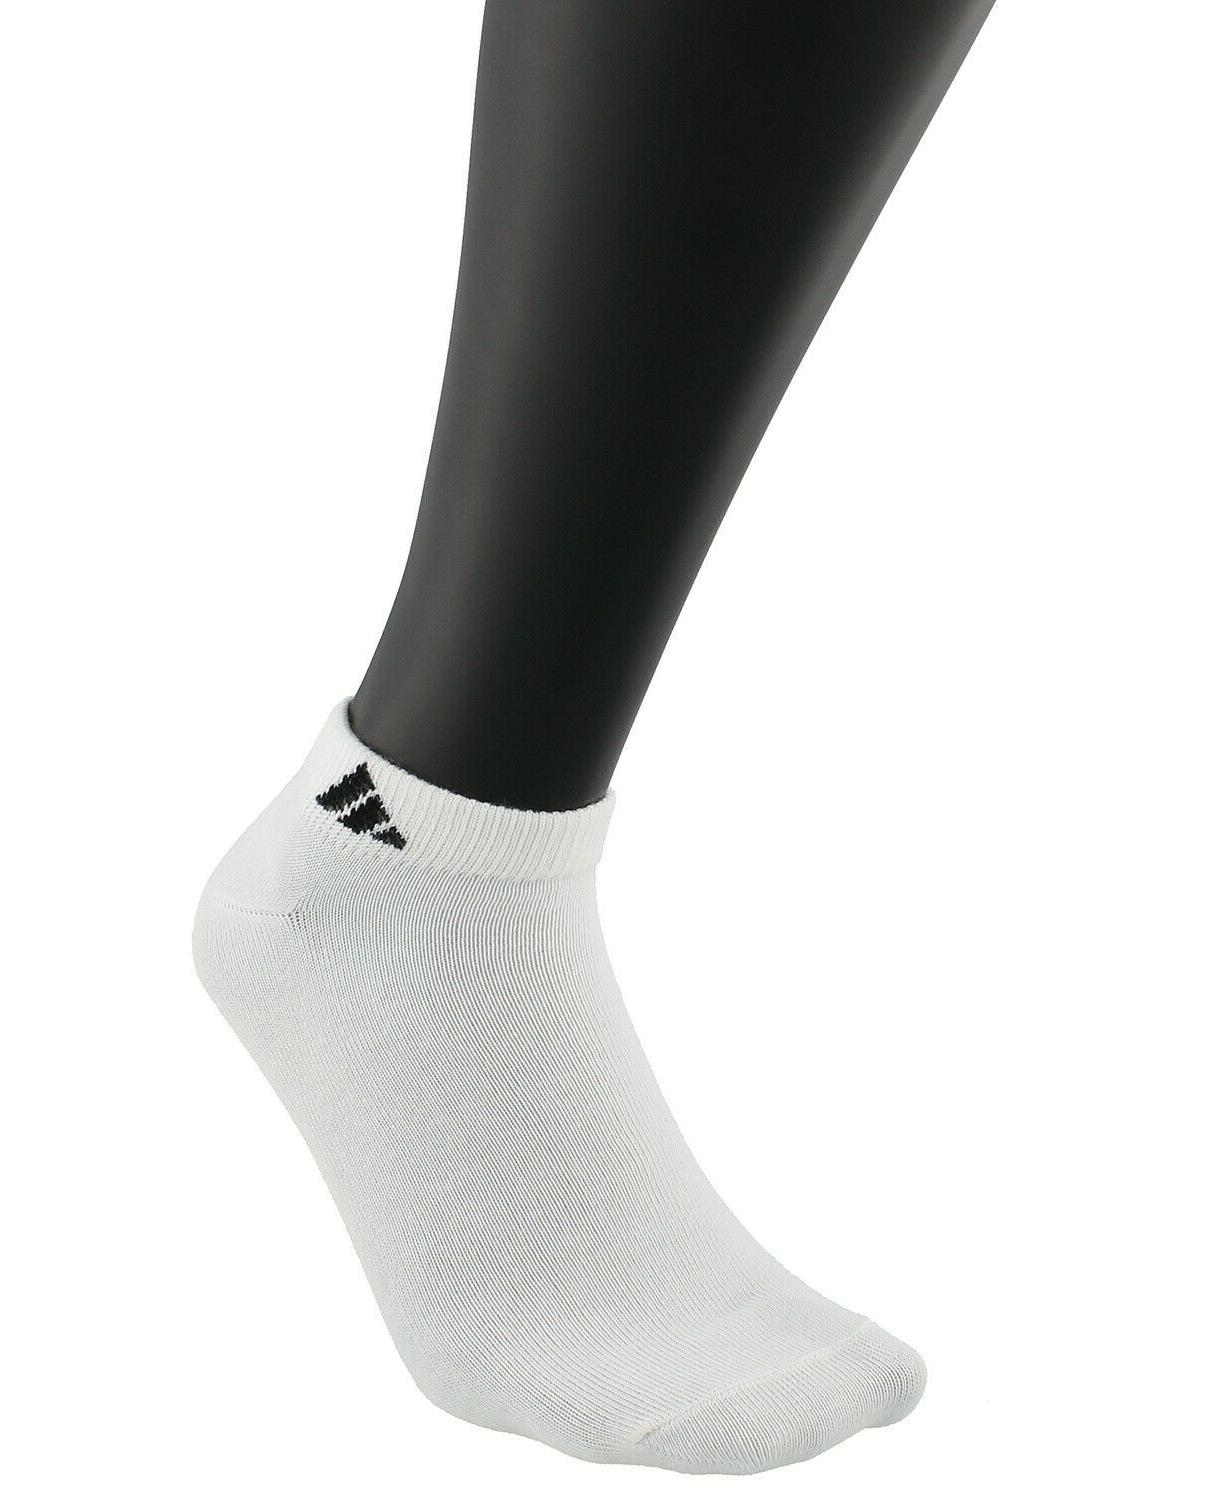 adidas socks Men's Low Cut Pack socks Mens comfort